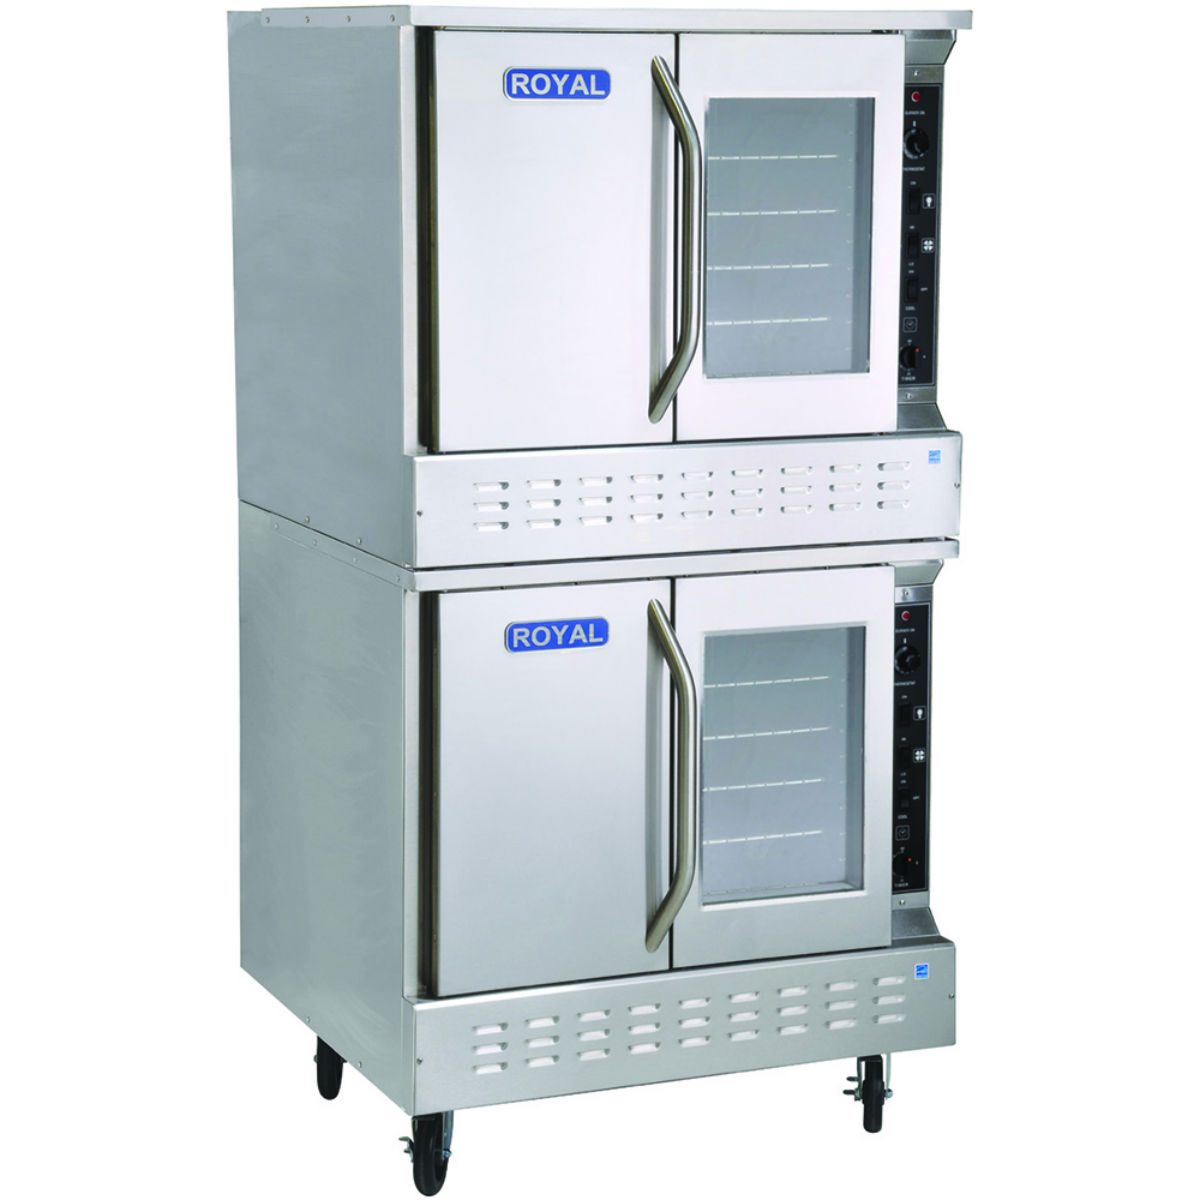 Convection Ovens Lease Finance Or Buy On Kwipped